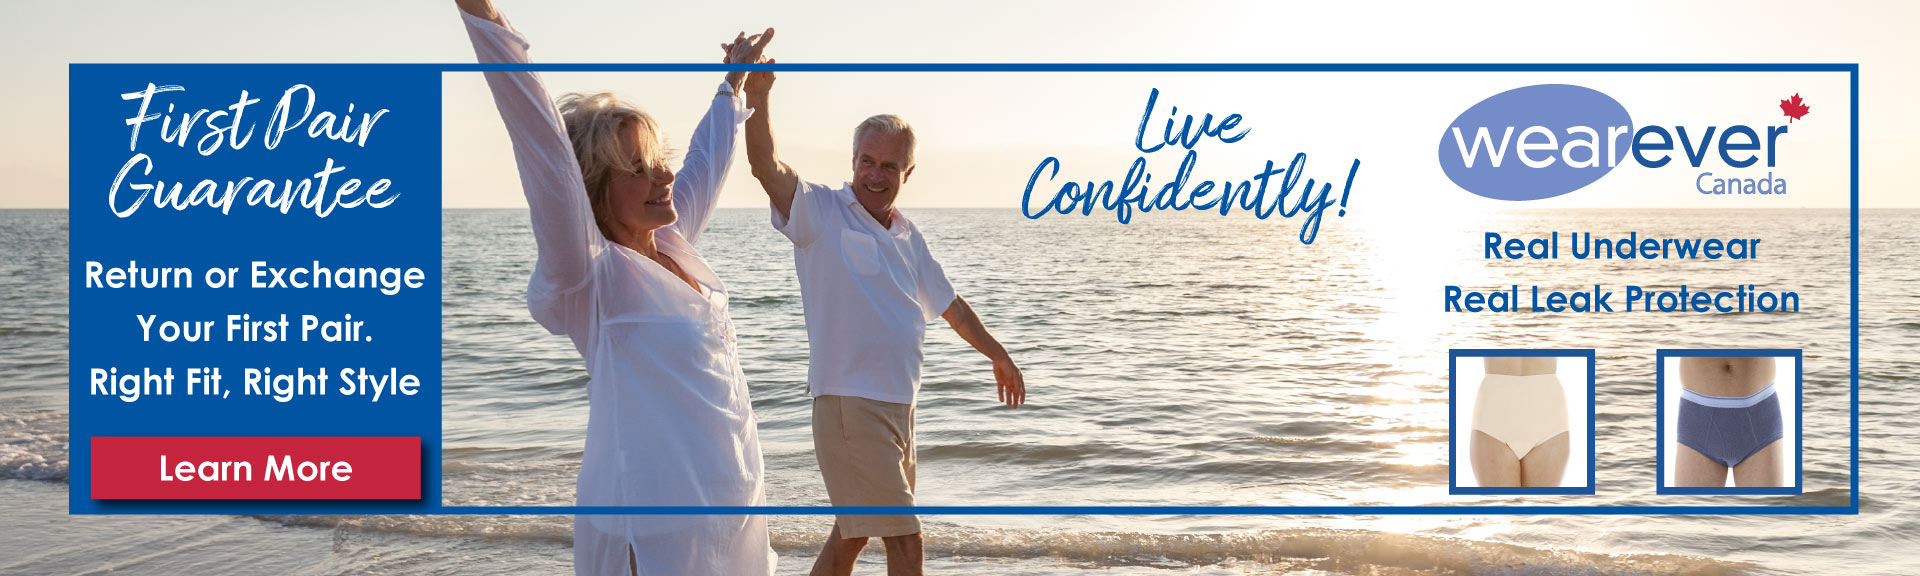 Live Confidently! Wearever Underwear! Real Underwear, Real Leak Protection. First Pair Guarantee. Return or exchange your first pair. Right style. Right fit.